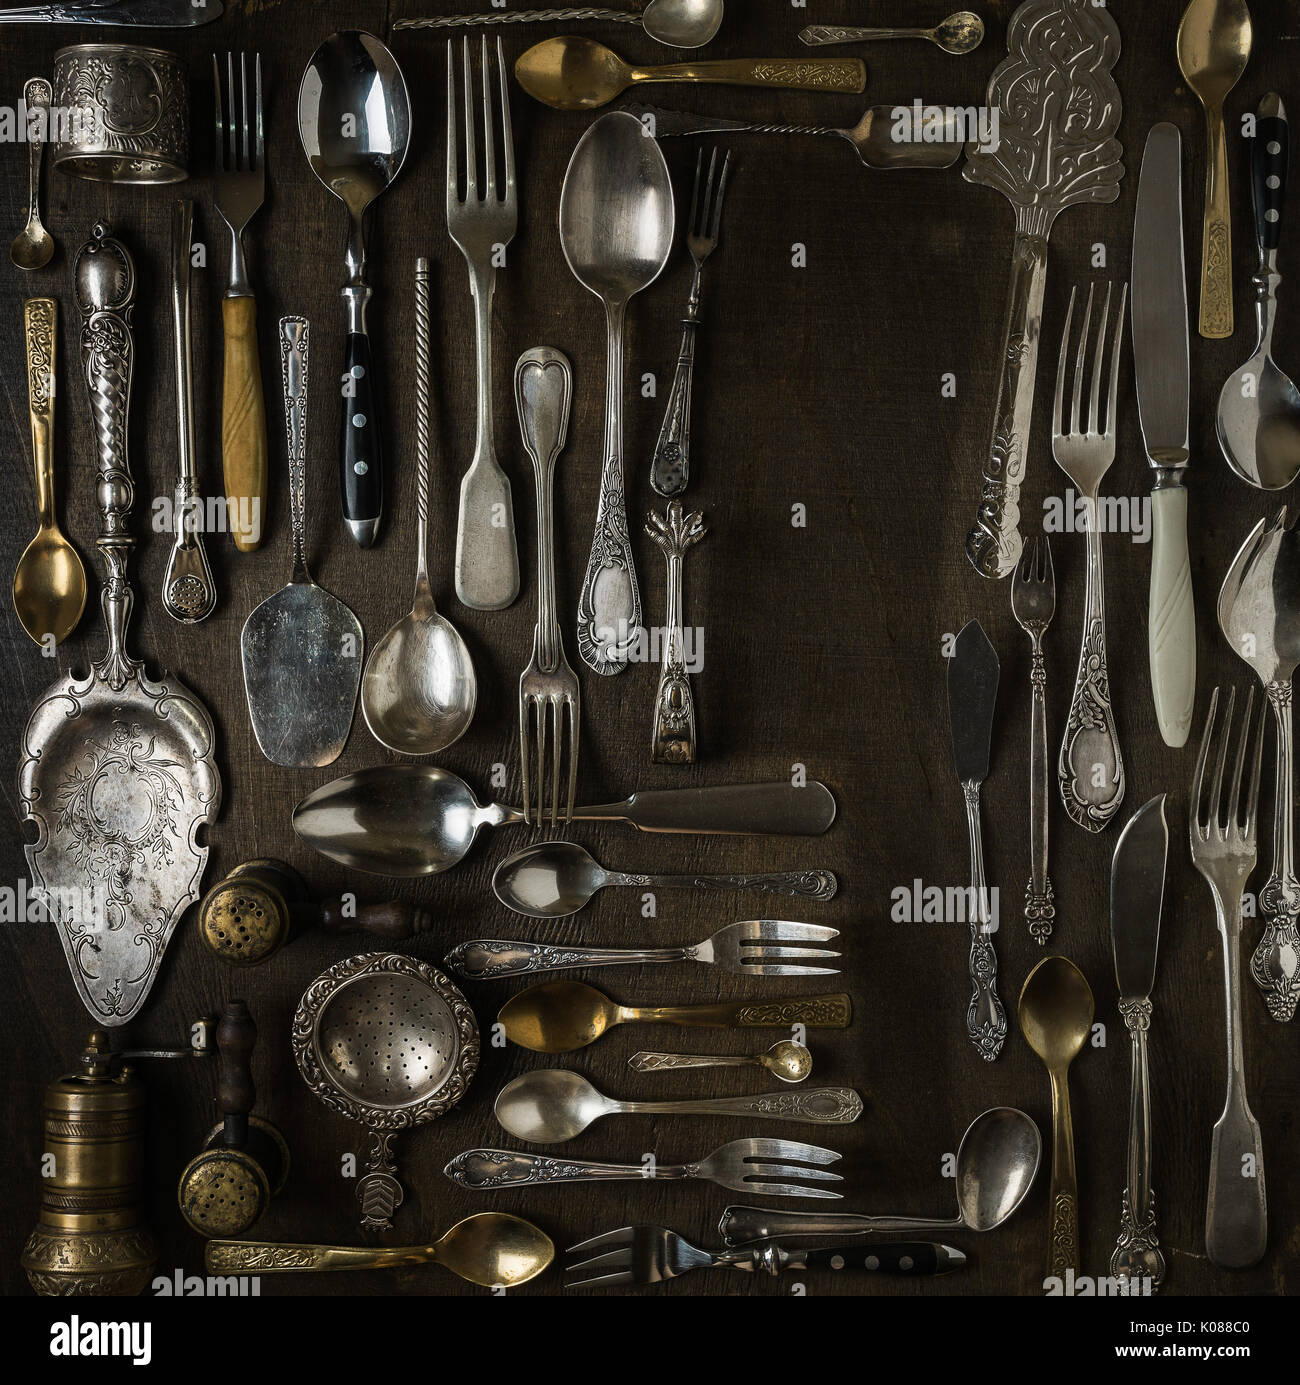 Cutlery, forks, spoons, and knives on dark wooden background - Stock Image